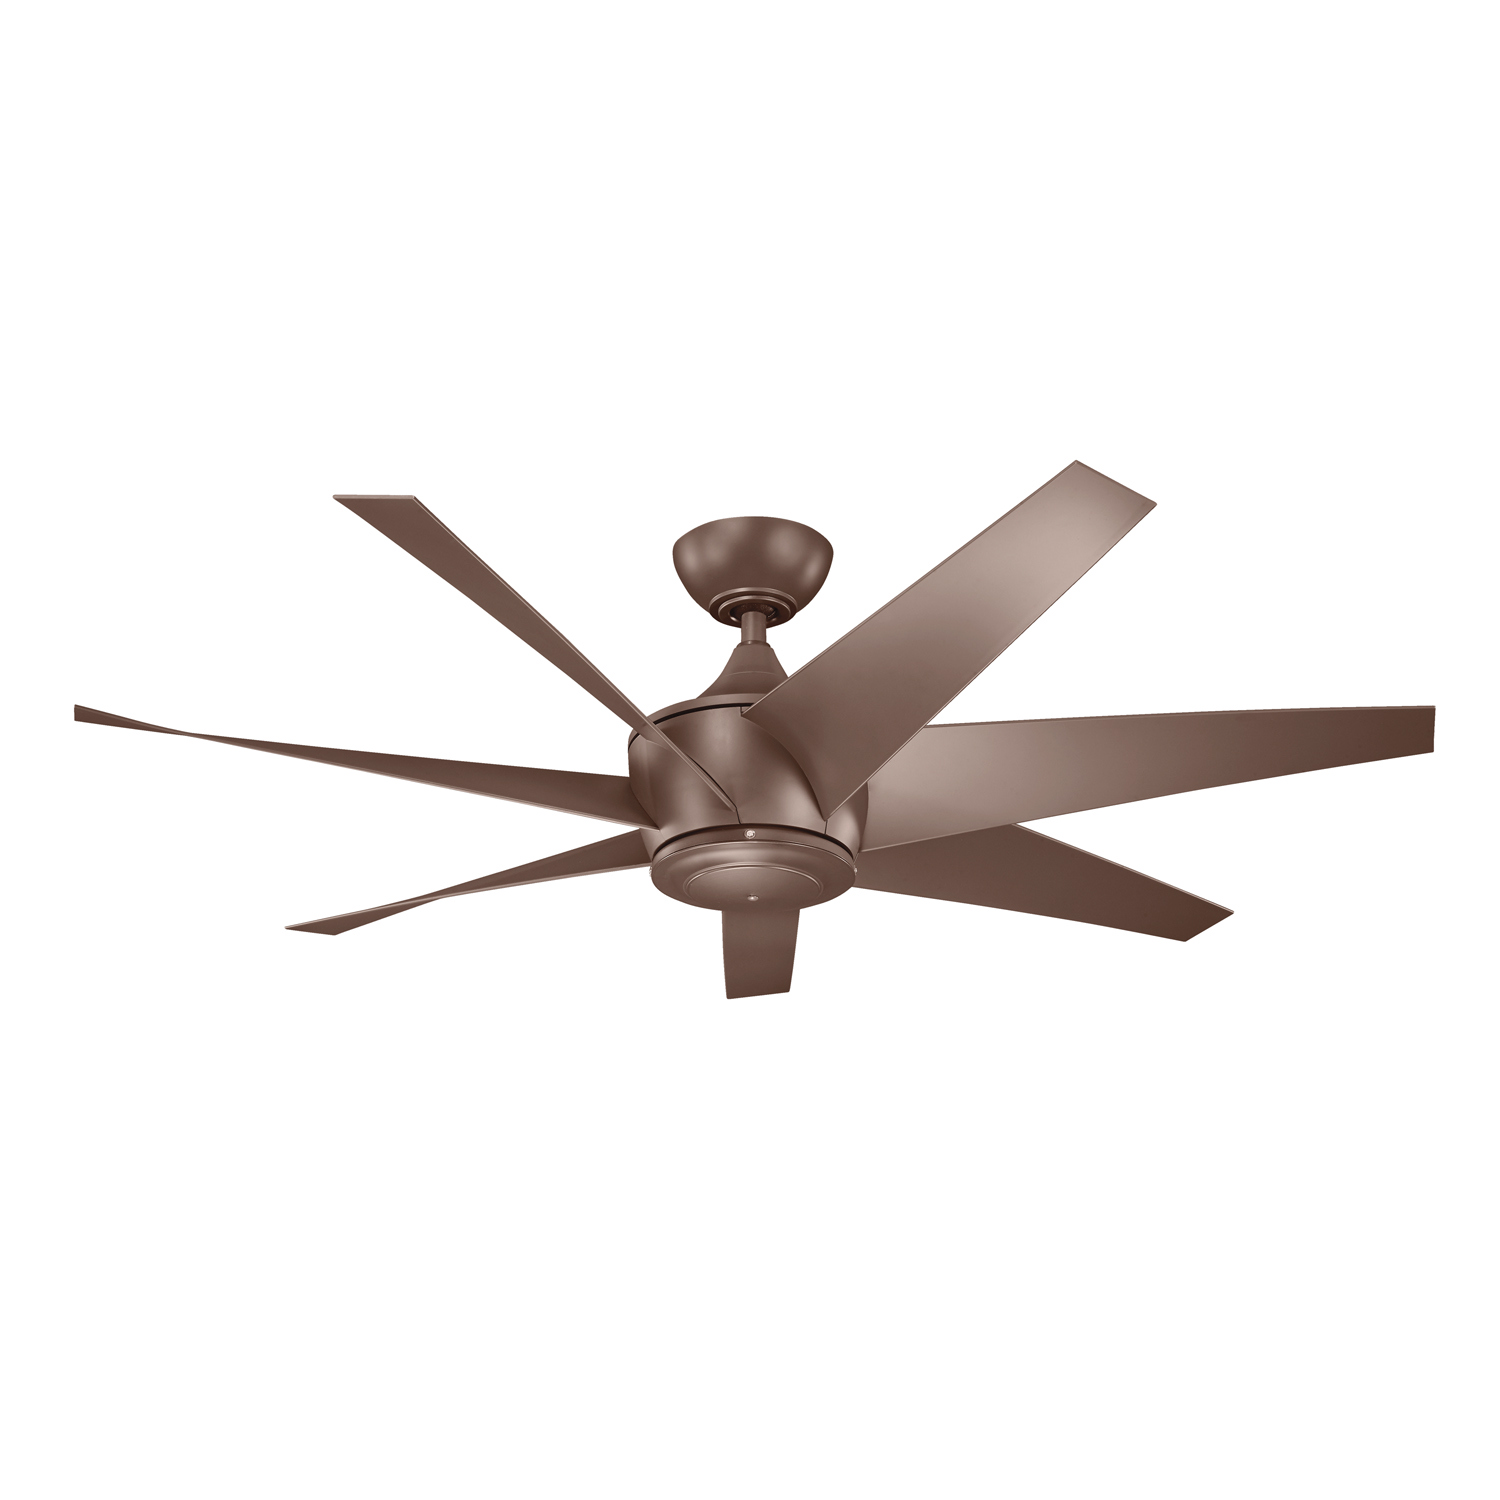 54 inchCeiling Fan from the II collection by Kichler 310112CMO